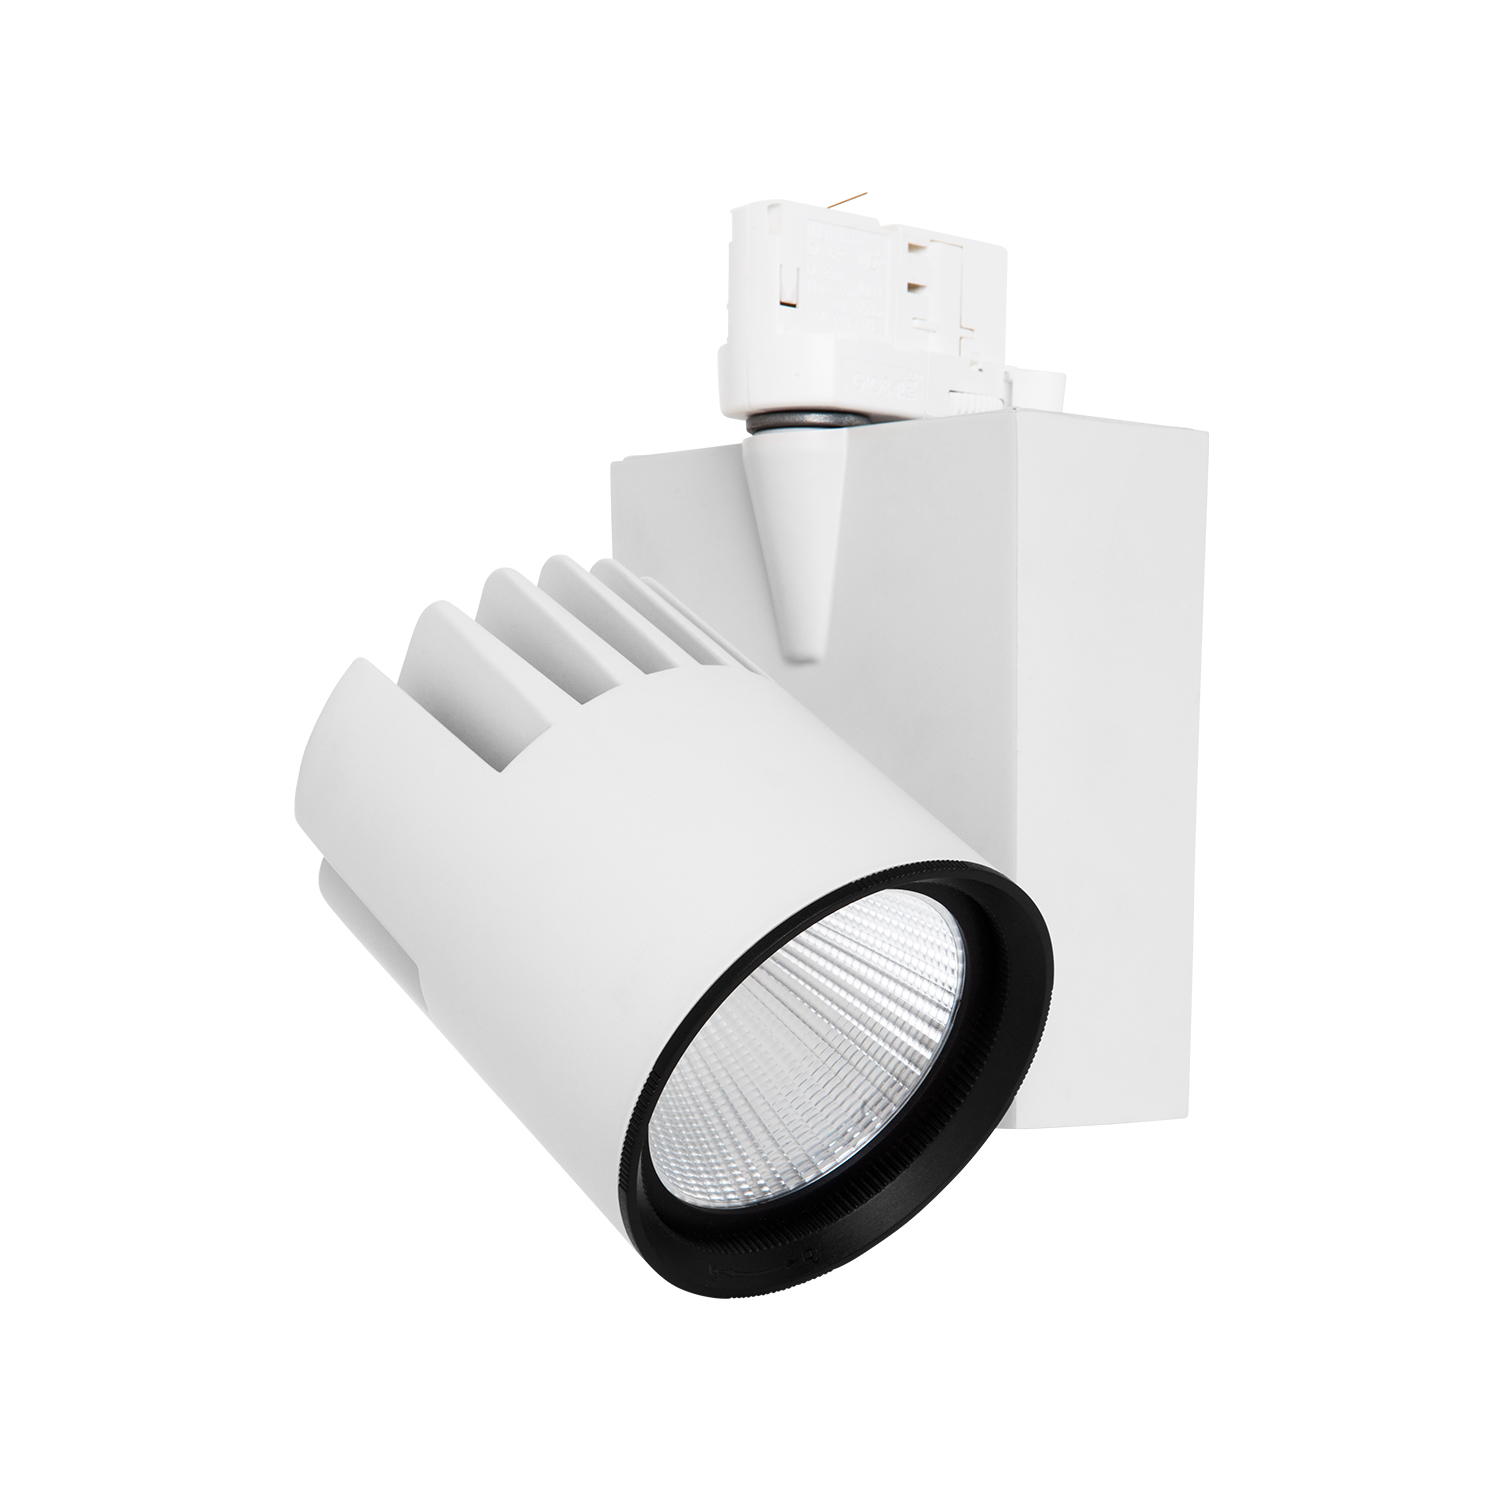 Verbatim 2nd Generation White Led Track Light 35w 3000k - The-martyr-lamp-an-energy-saver-project